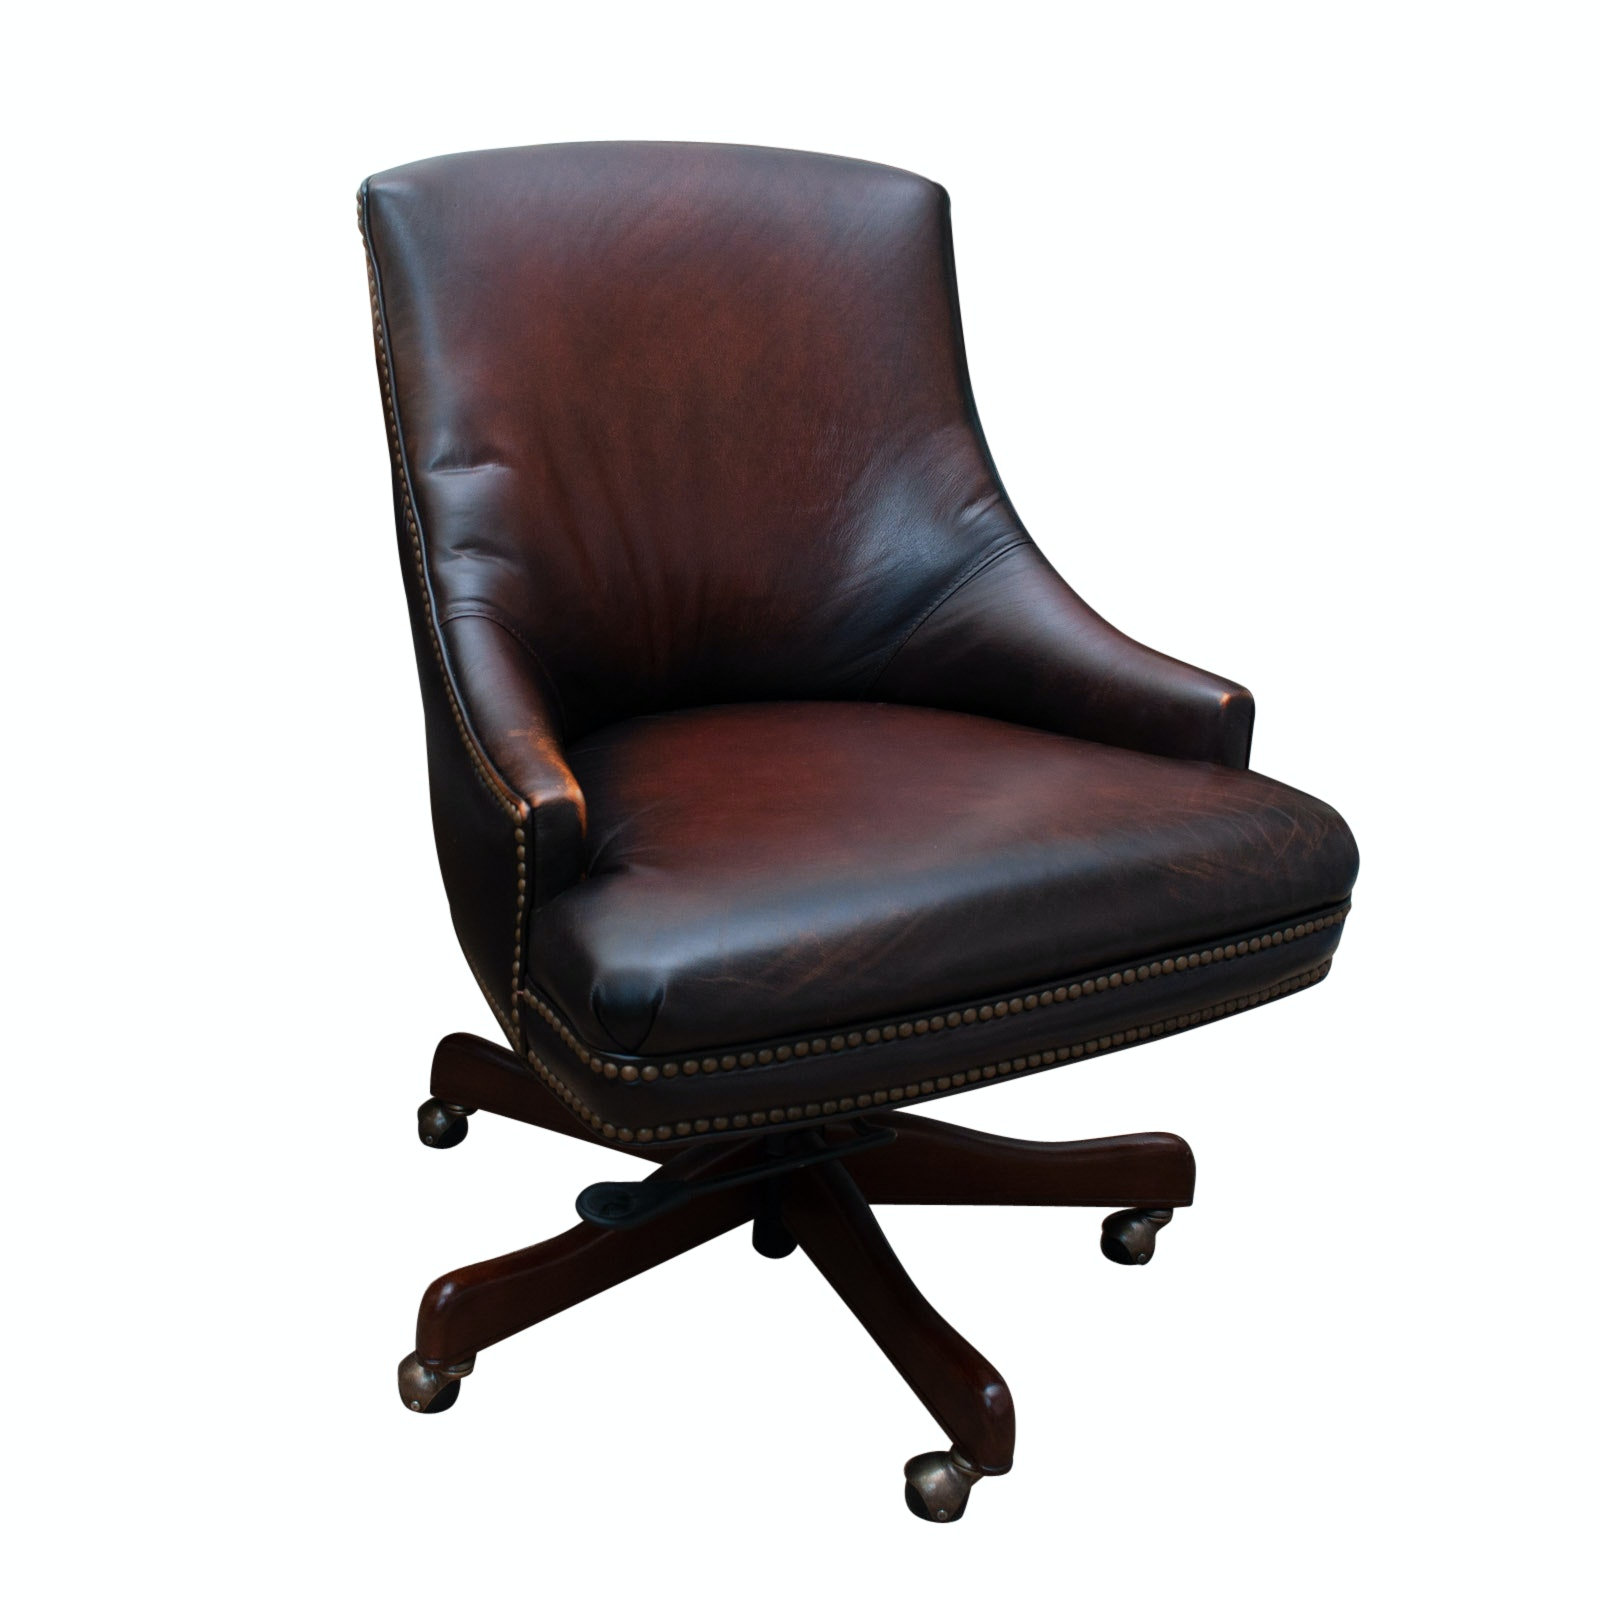 Seven Seas Leather Desk Chair